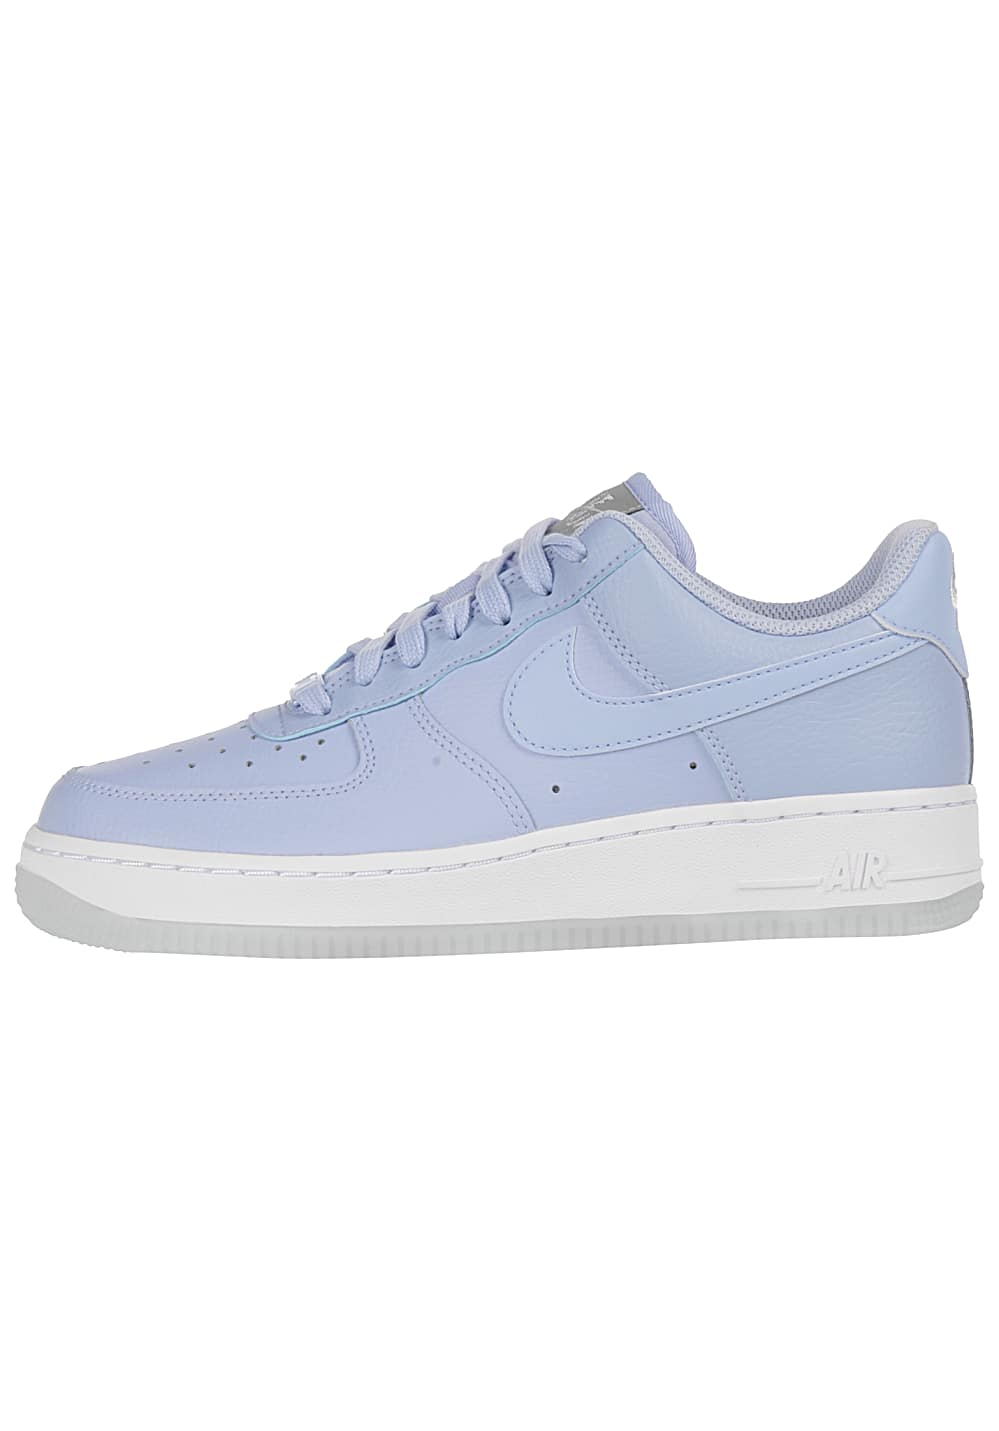 new arrivals 94b92 06258 NIKE SPORTSWEAR Air Force 1 '07 Ess - Sneakers for Women - Blue